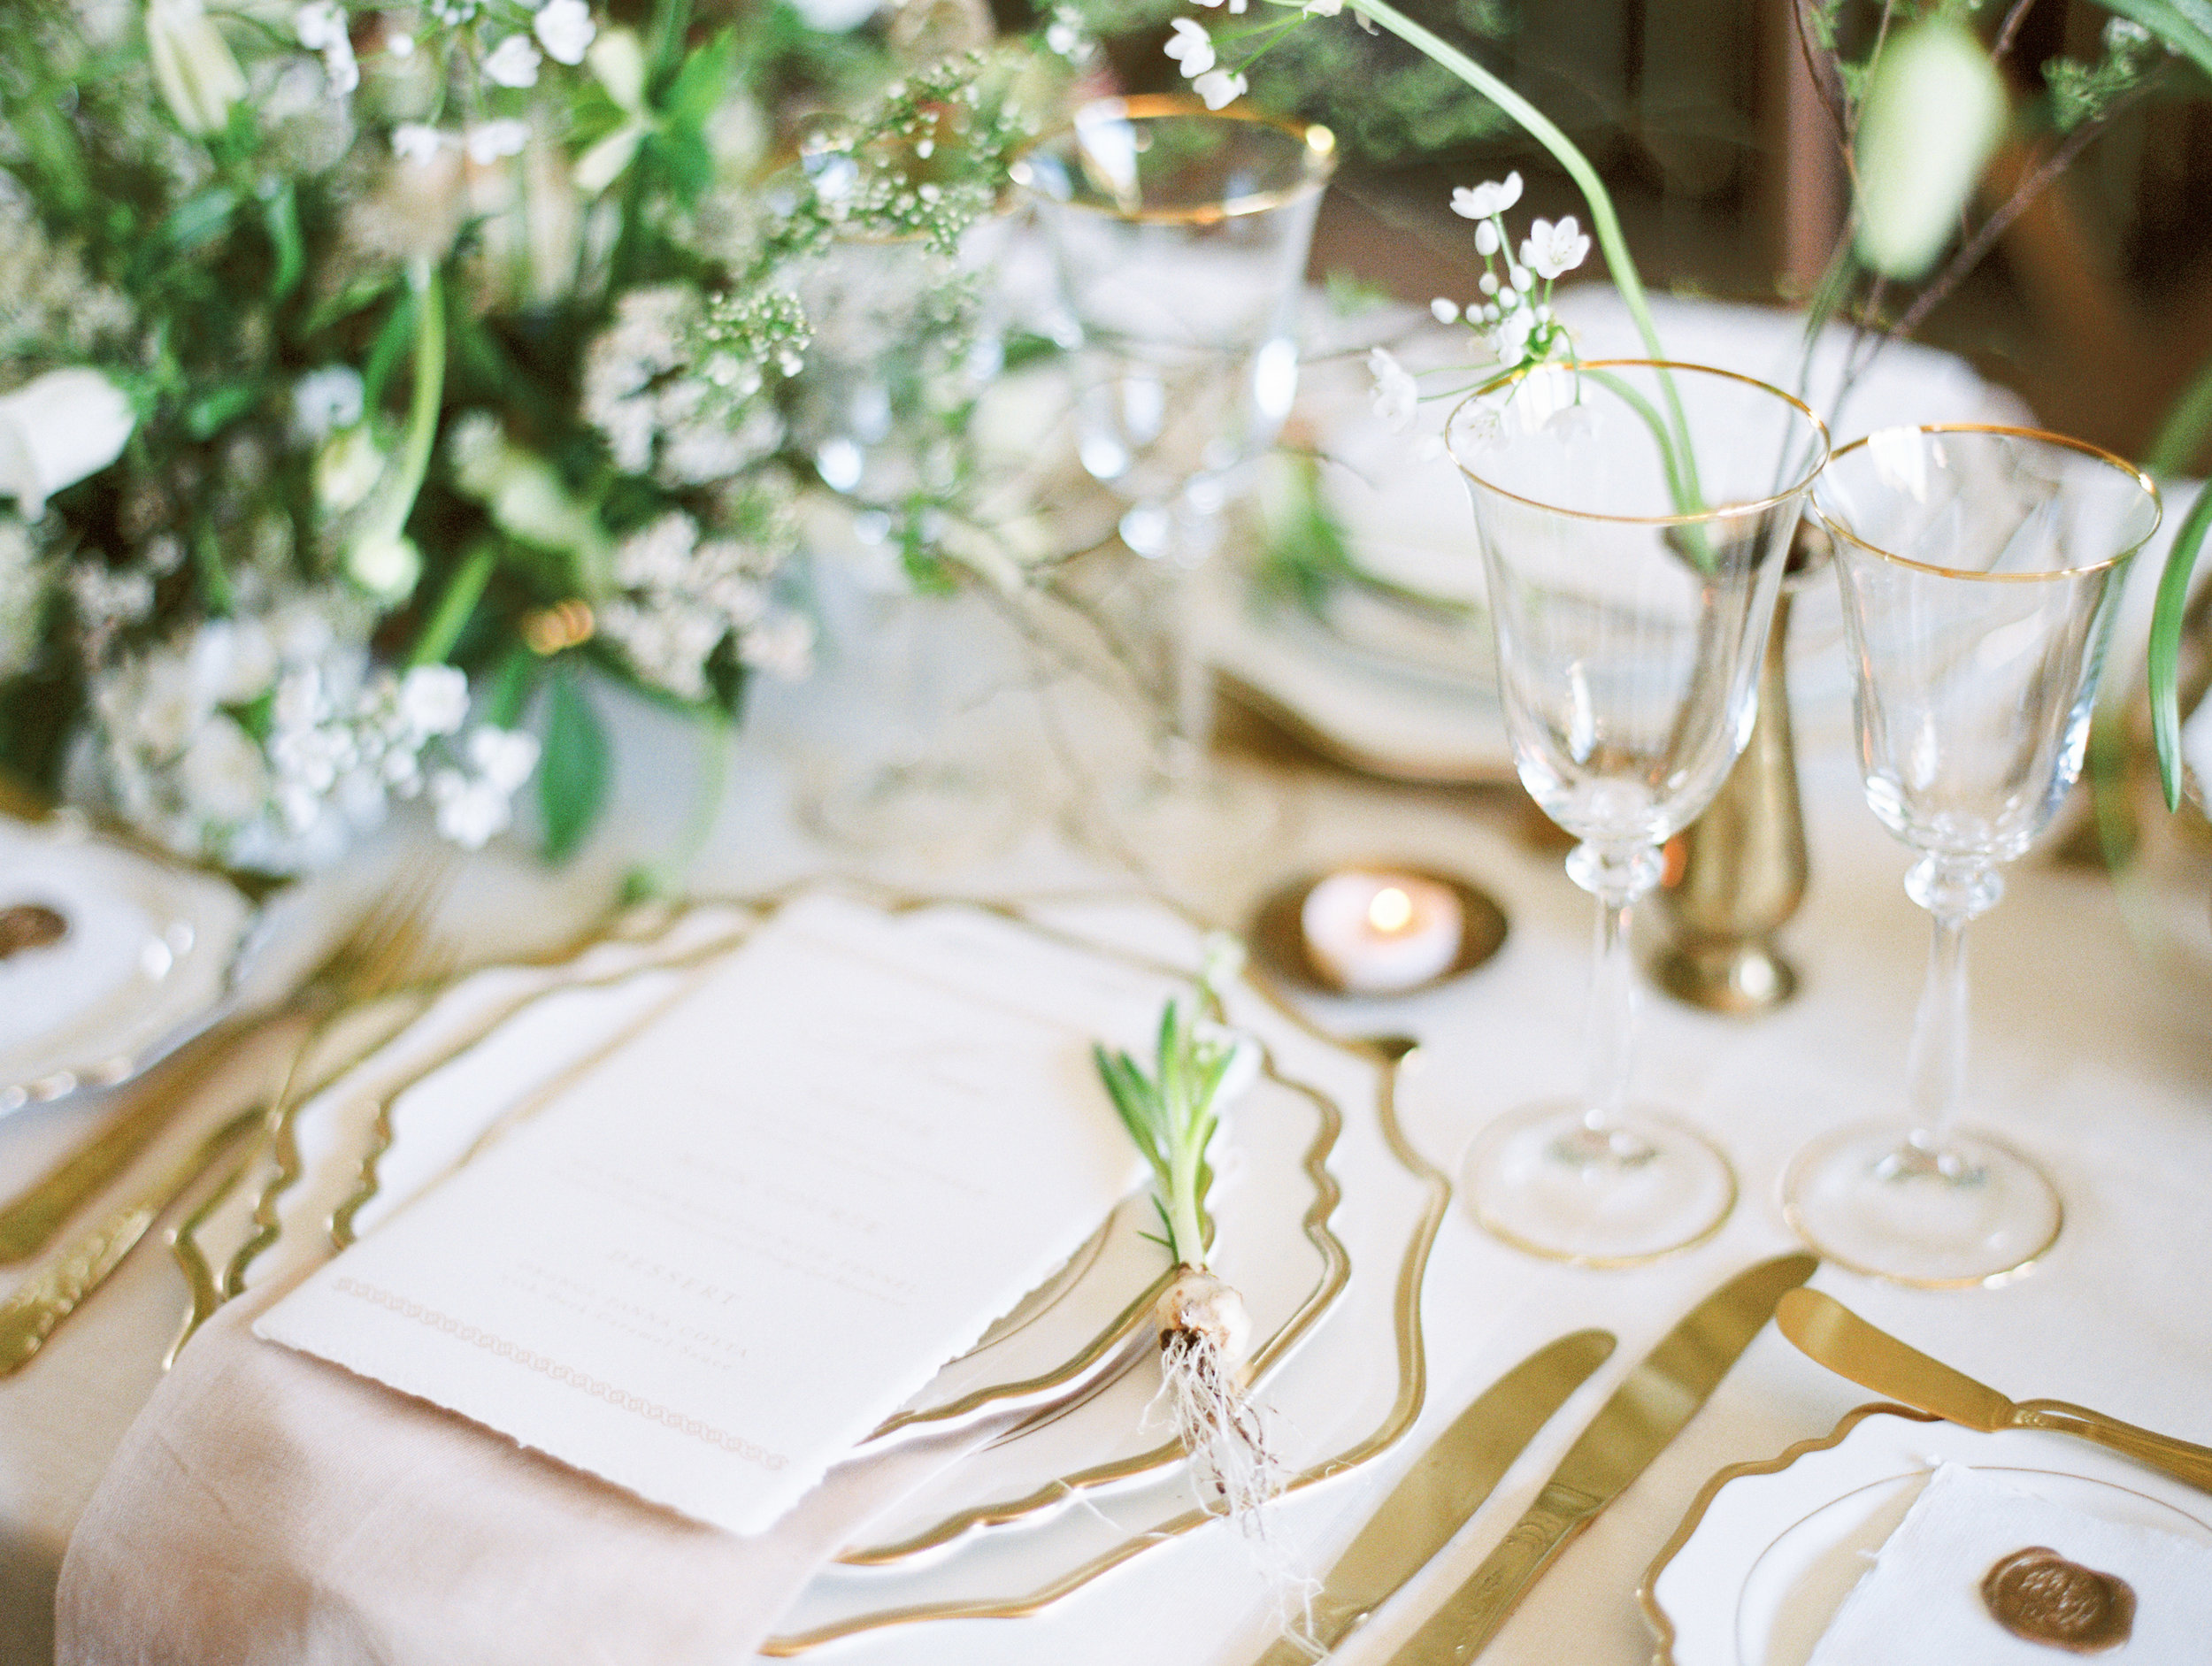 The Timeless Stylist-Elegant Wedding and Event Styling-Spring Design Table Decor-Gold Cutlery